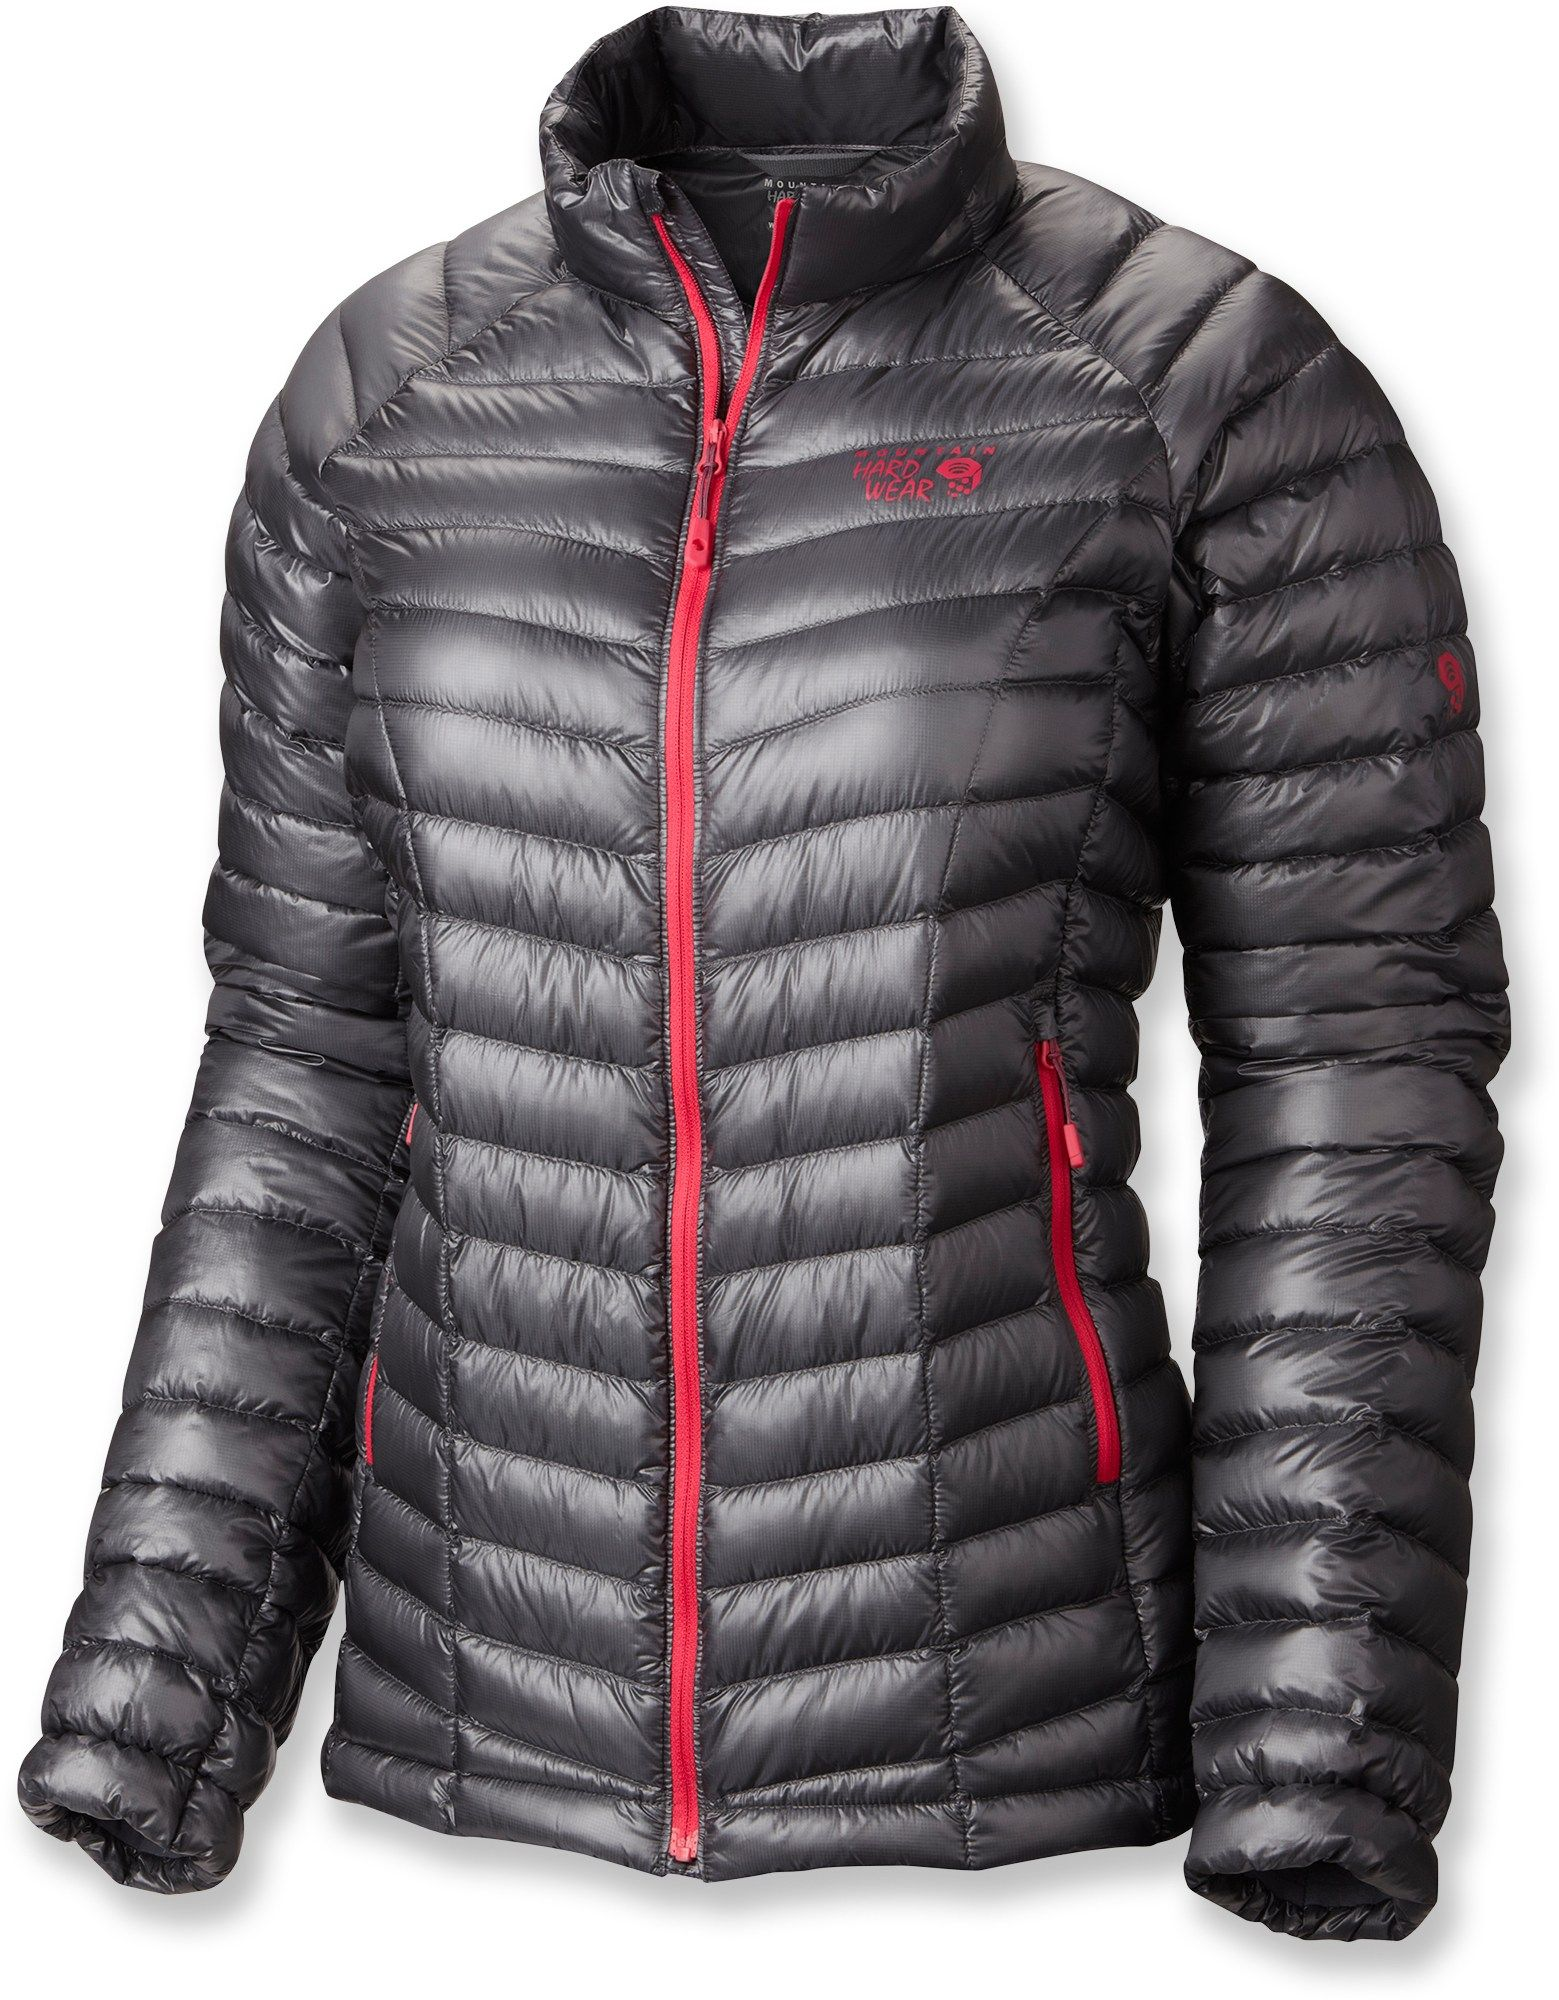 6b03a1208 Ghost Whisperer Down Jacket - Women's   Lazy and Soft   Jackets ...